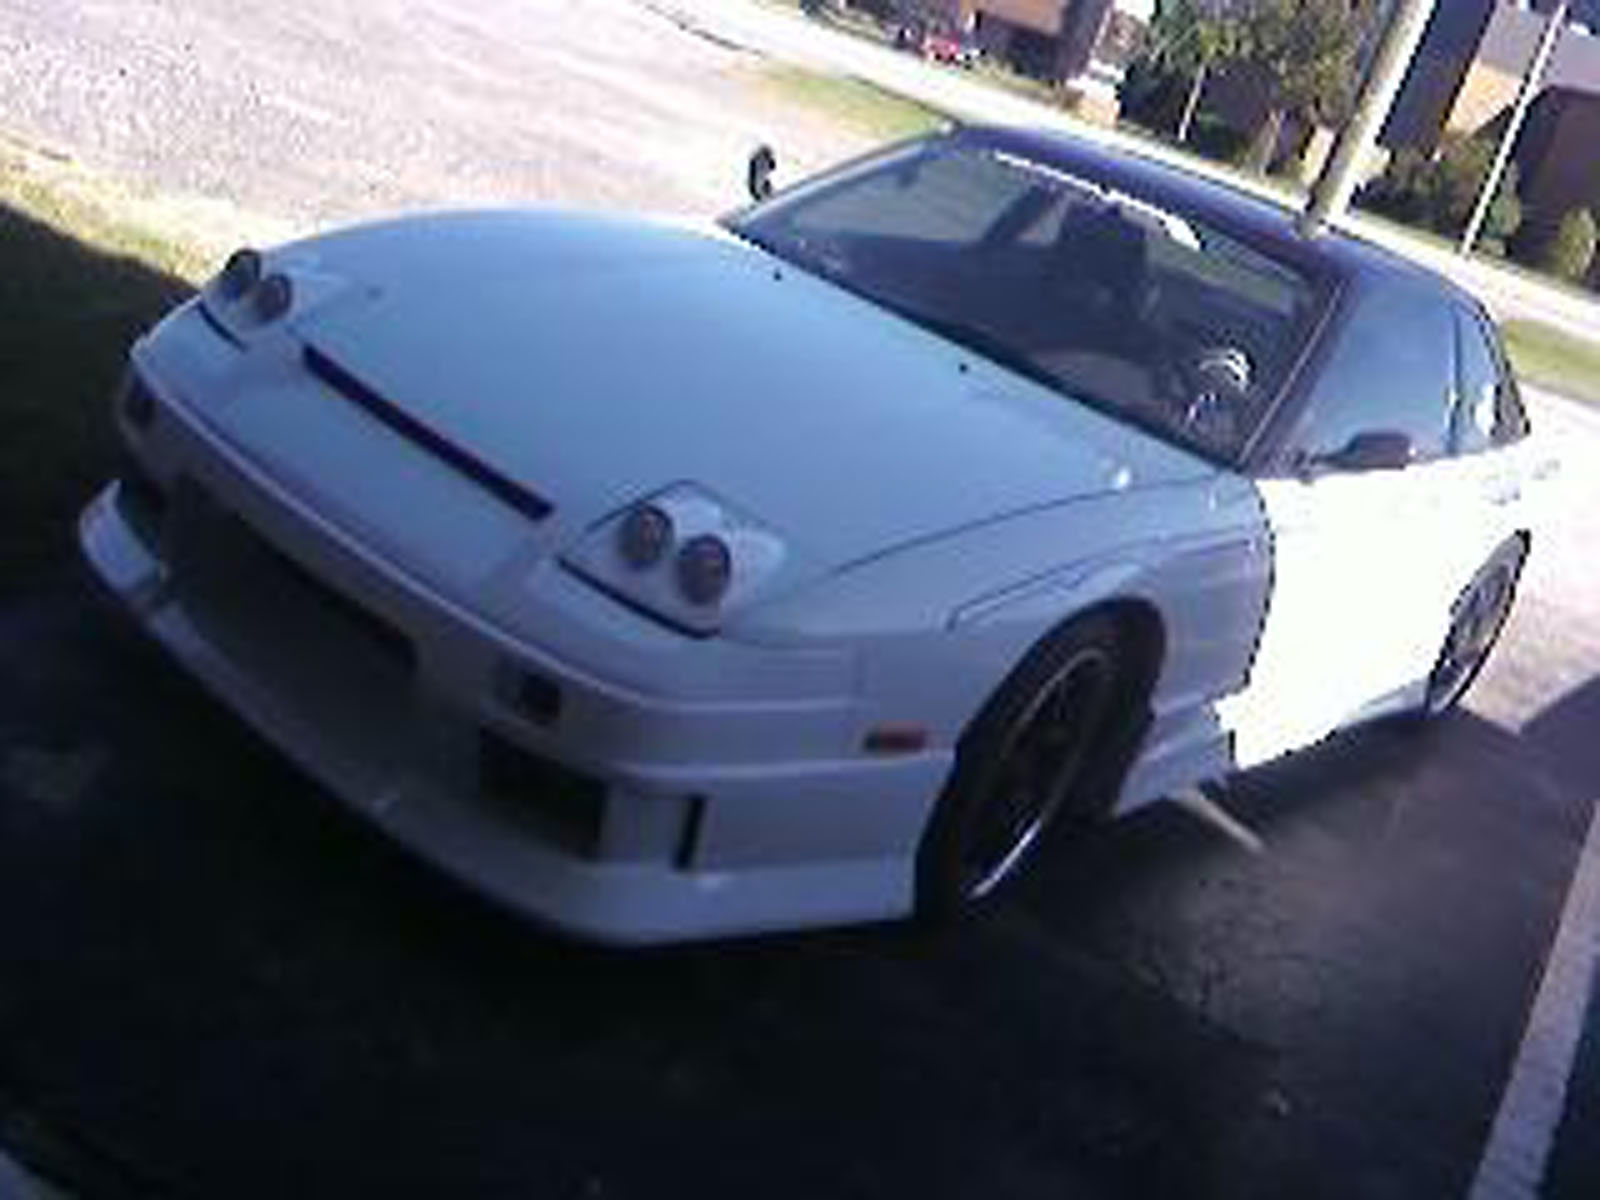 1990 Nissan Nissan 240sx SR20DET S13 Red Top [240SX] s13 For Sale